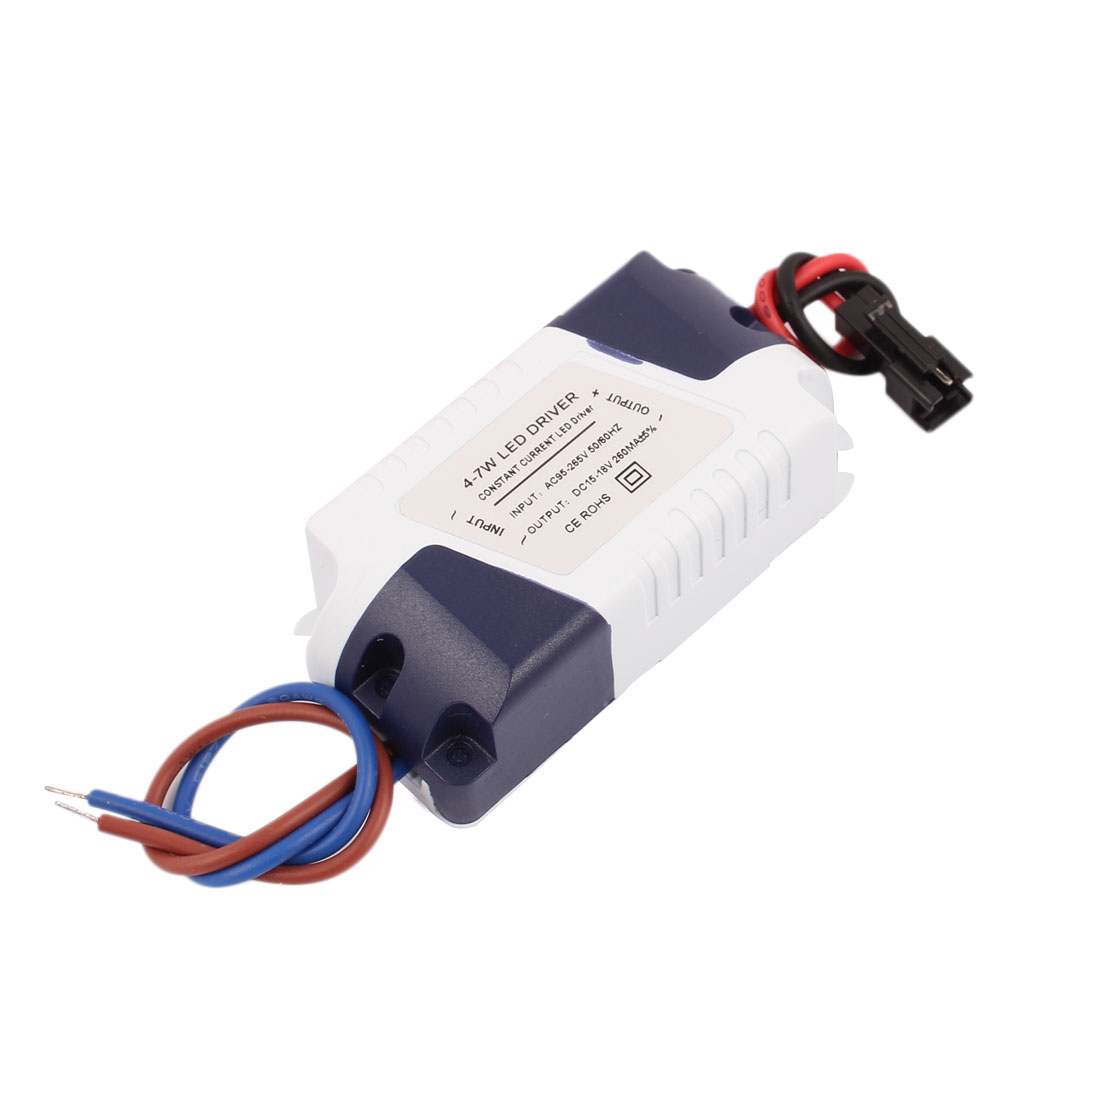 AC 95-265V to DC 15-18V Plastic Shell (4-7)x1W LED Power Supply Driver Adapter